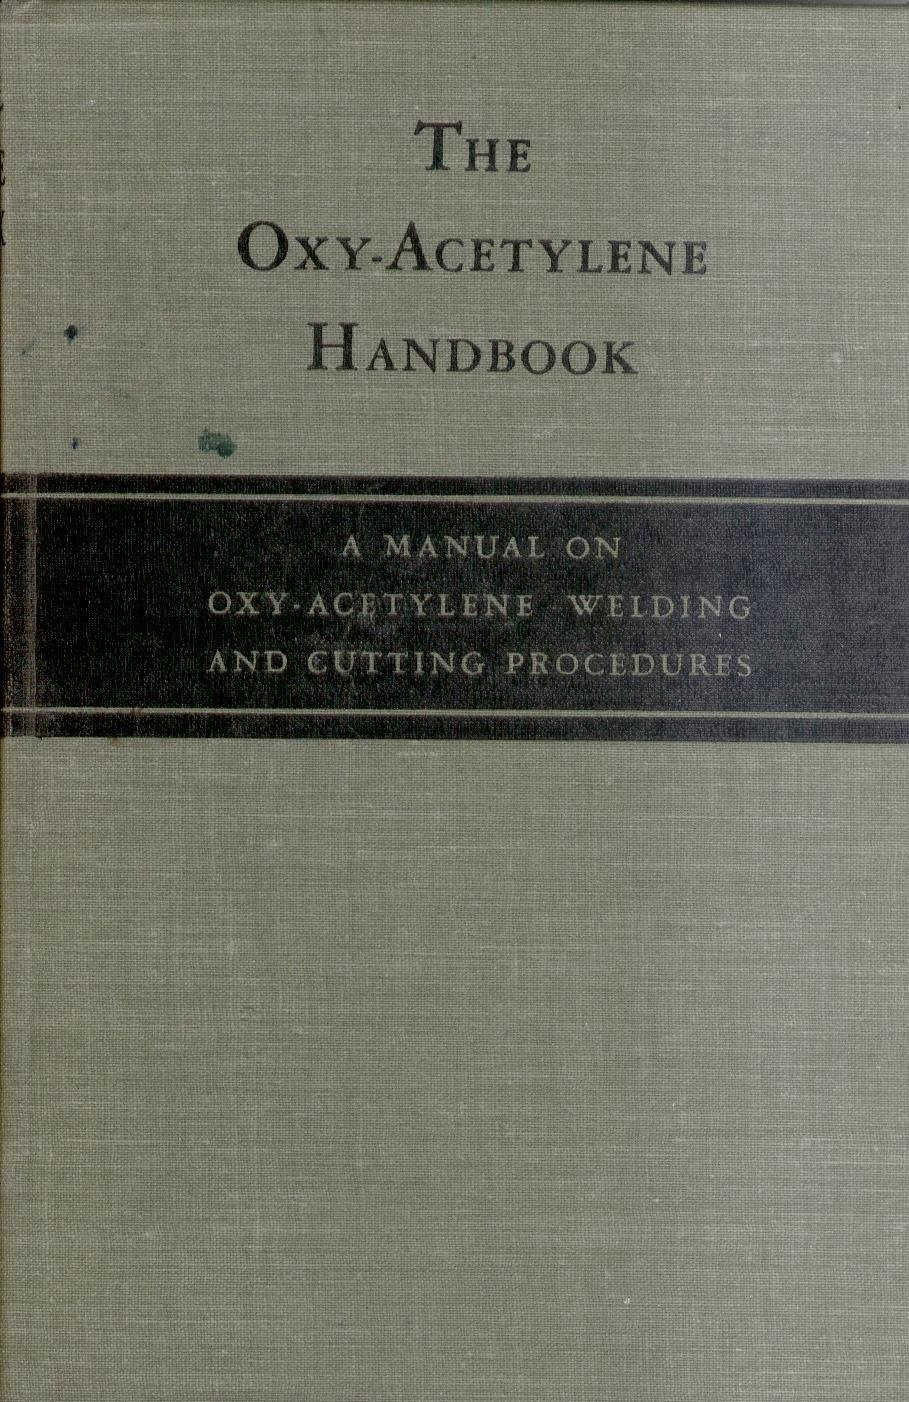 e4962c1ad8eb The Oxy-Acetylene Handbook: a Manual on Oxy-Acetylene Welding and ...